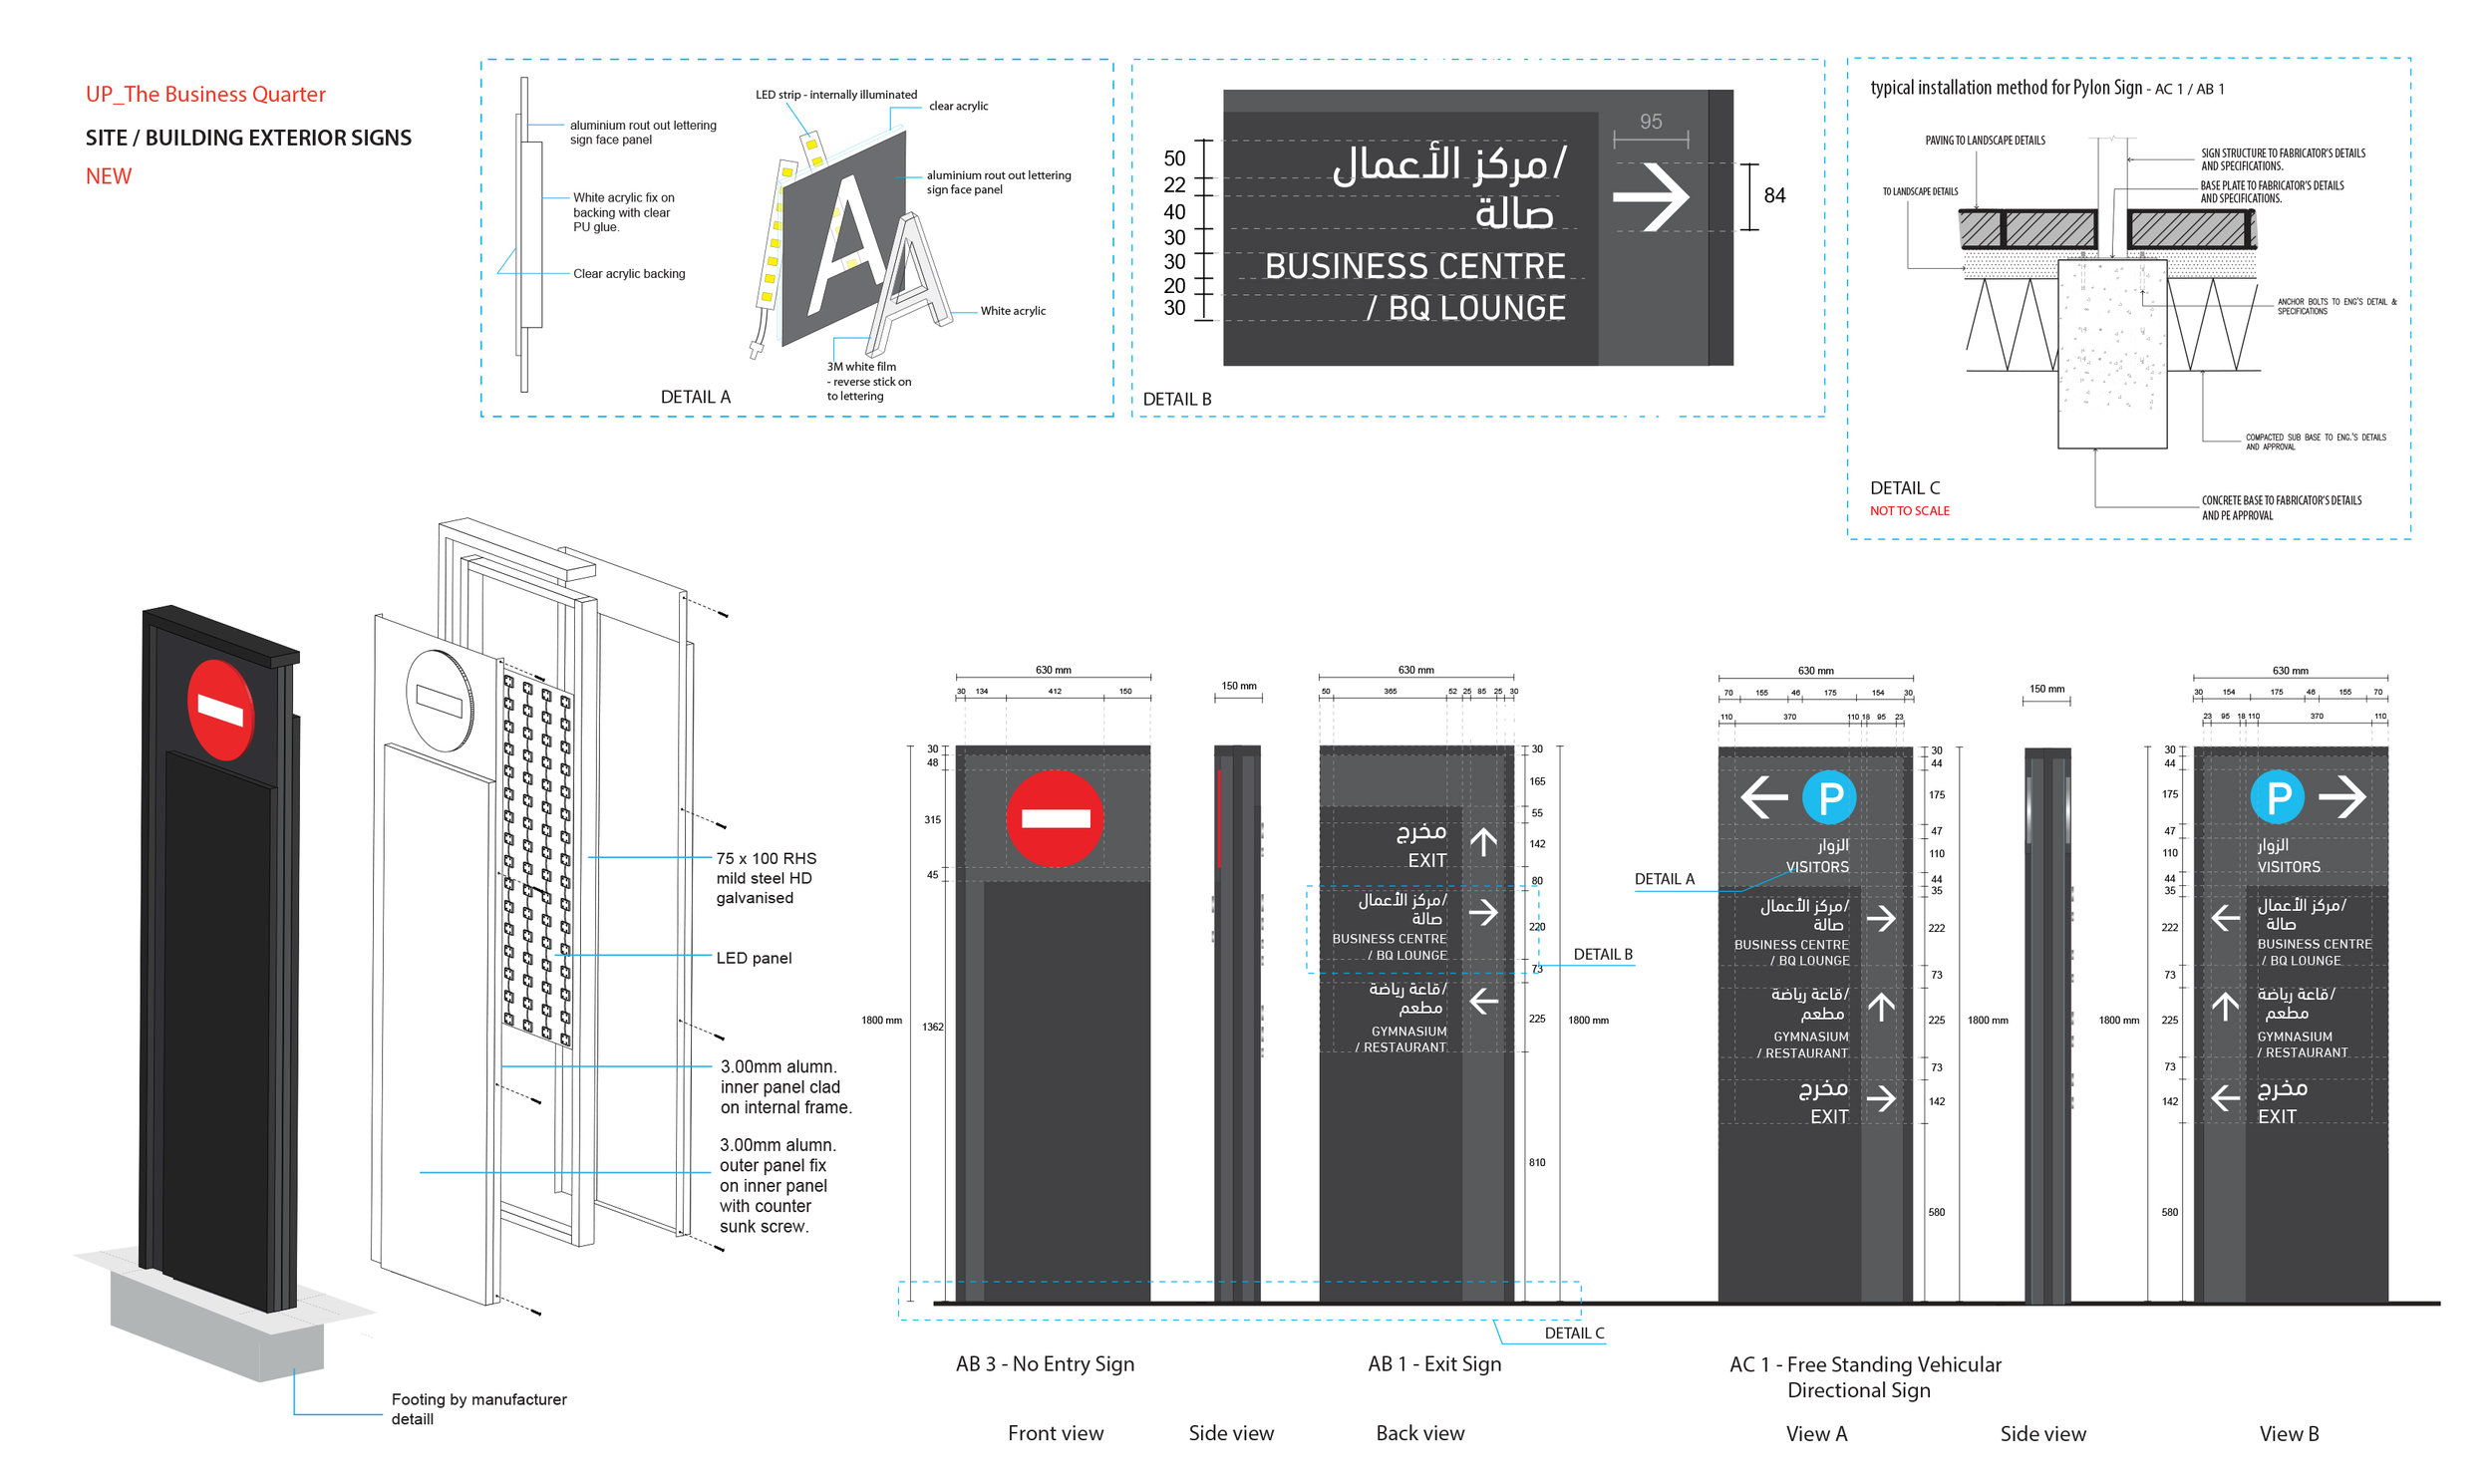 As the project is overseas, schematic drawings require more technical detail than usual. For local (Malaysian) projects,the shop / technical drawings are normally done by the appointed sign fabricator.